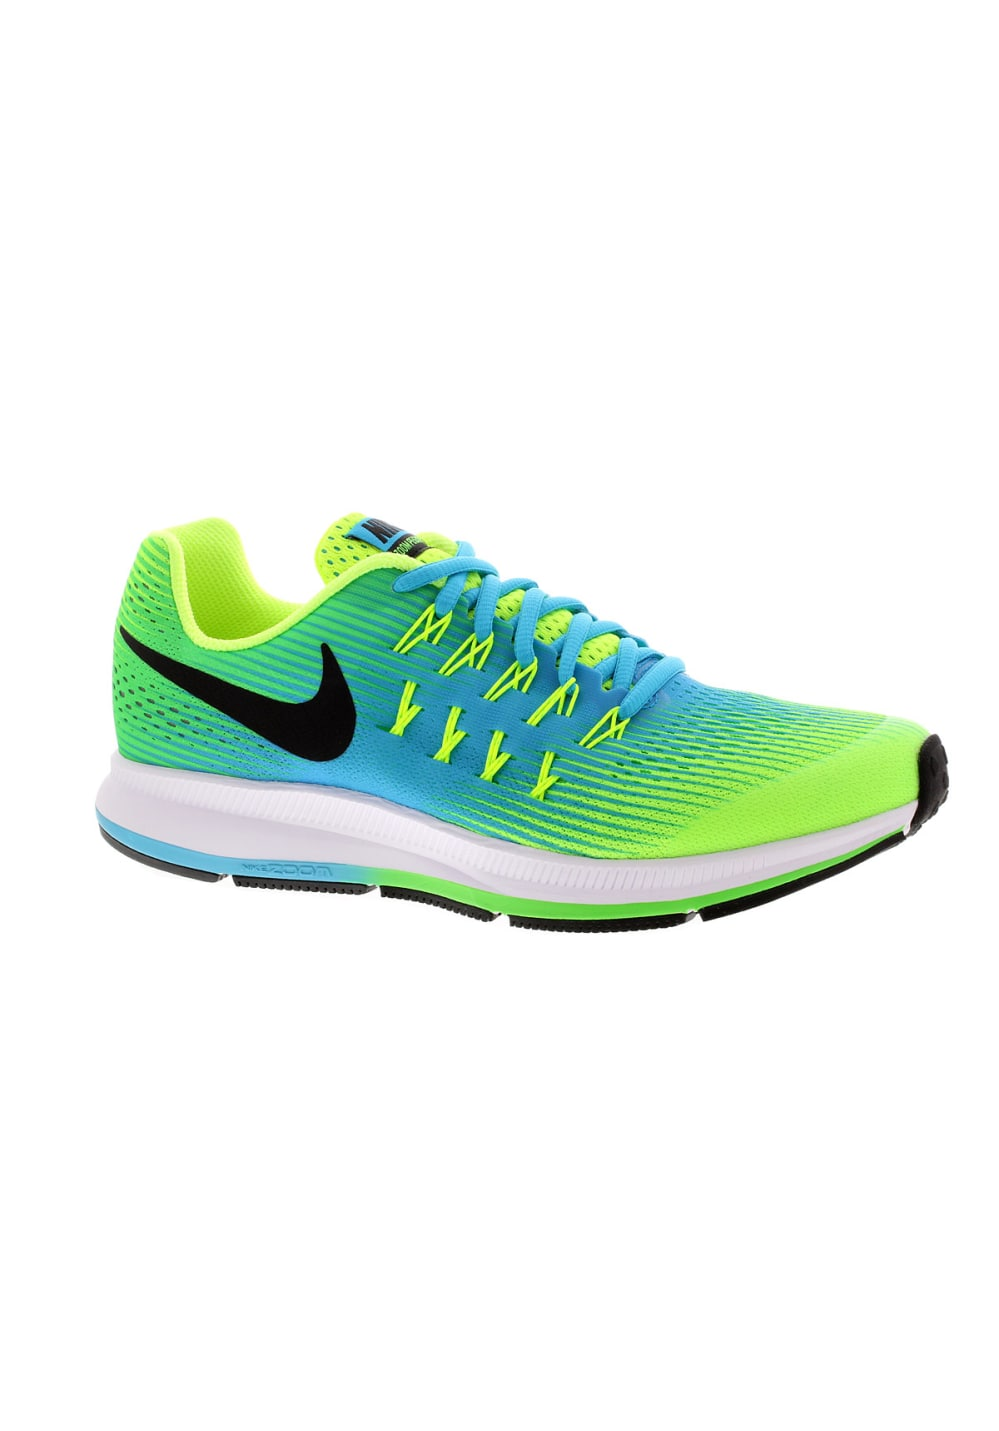 the latest c3de4 86a56 Nike Air Zoom Pegasus 33 GS Boys - Running shoes - Blue